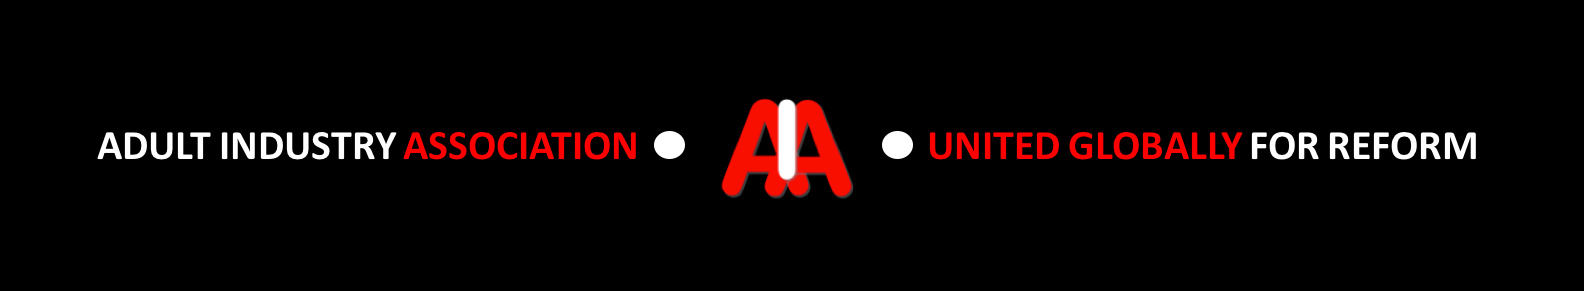 Adult Industry Association Logo